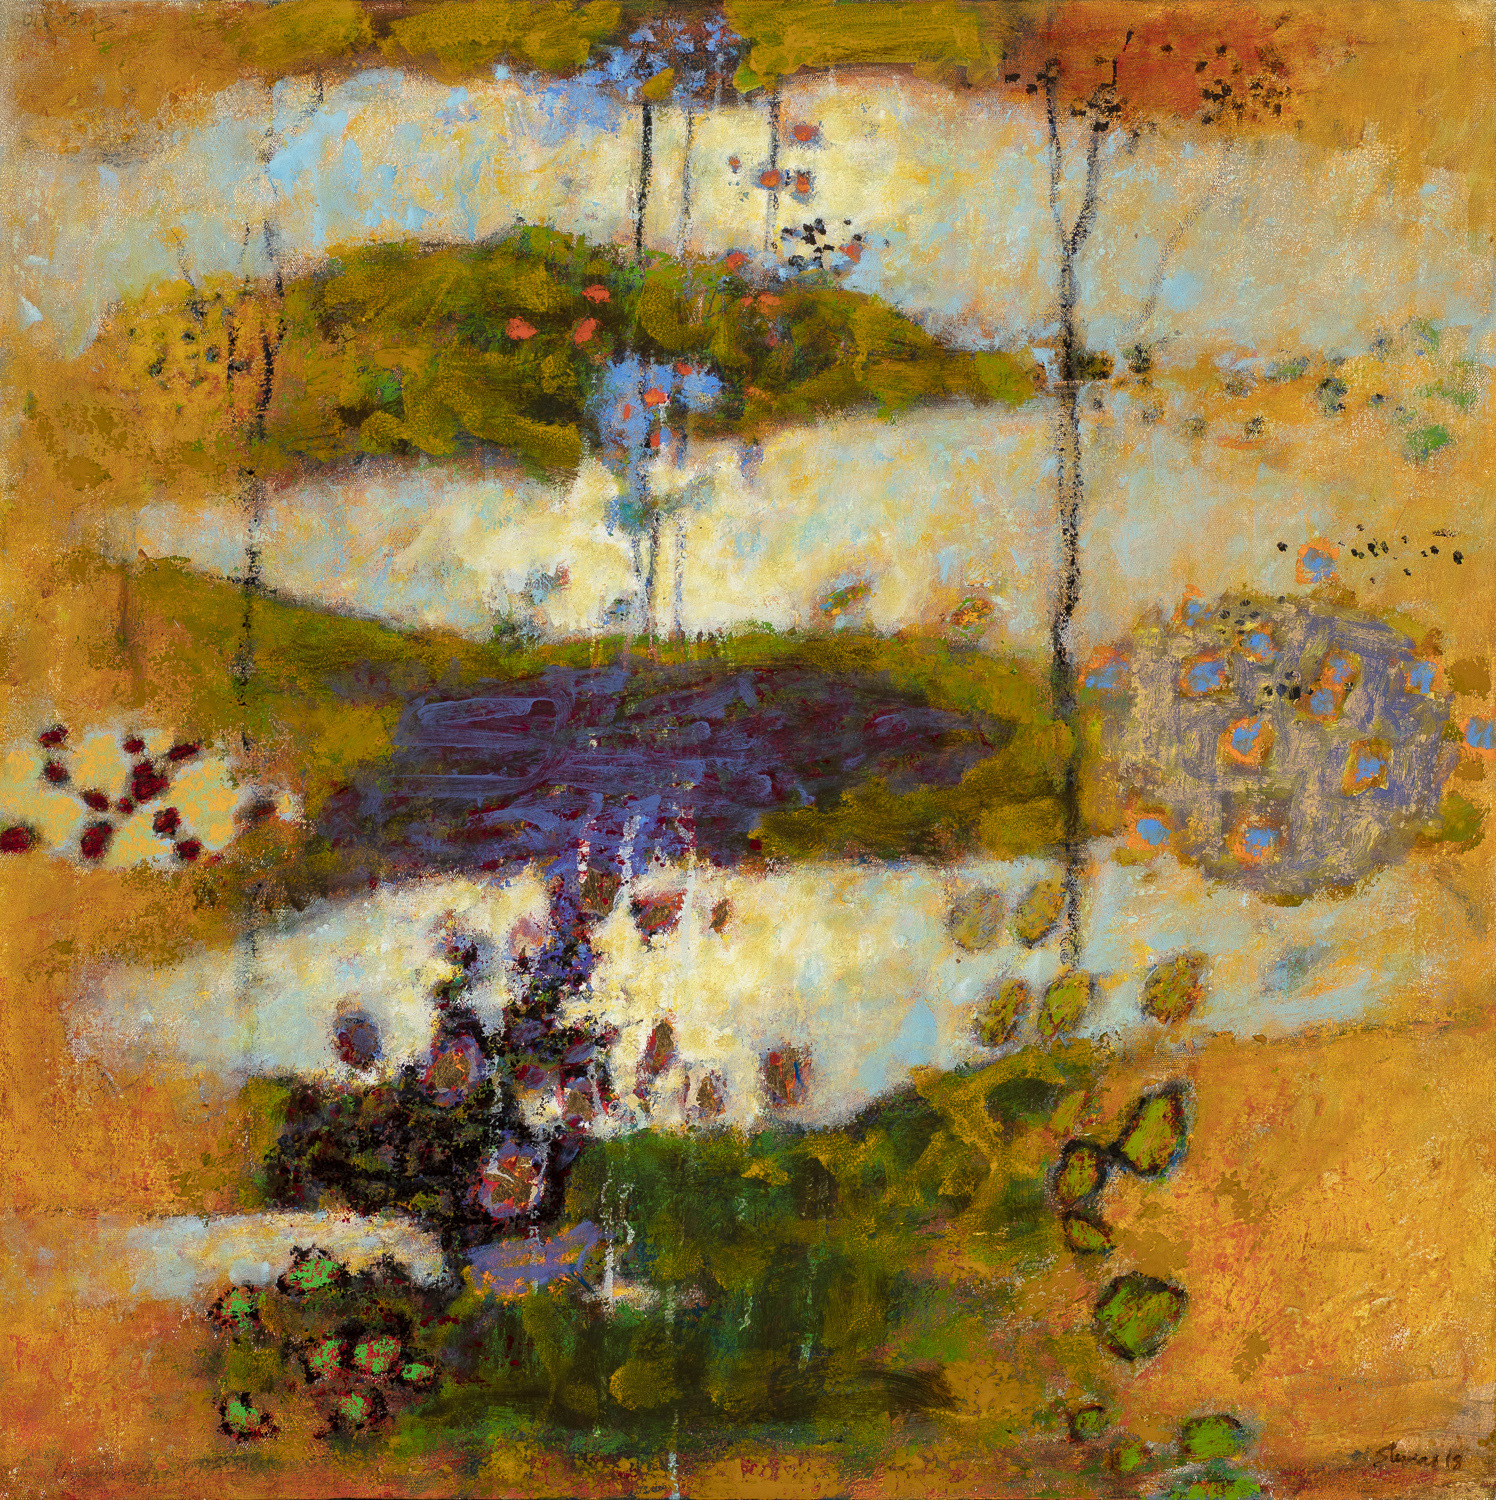 Secret Story  | oil on canvas | 32 x 32"